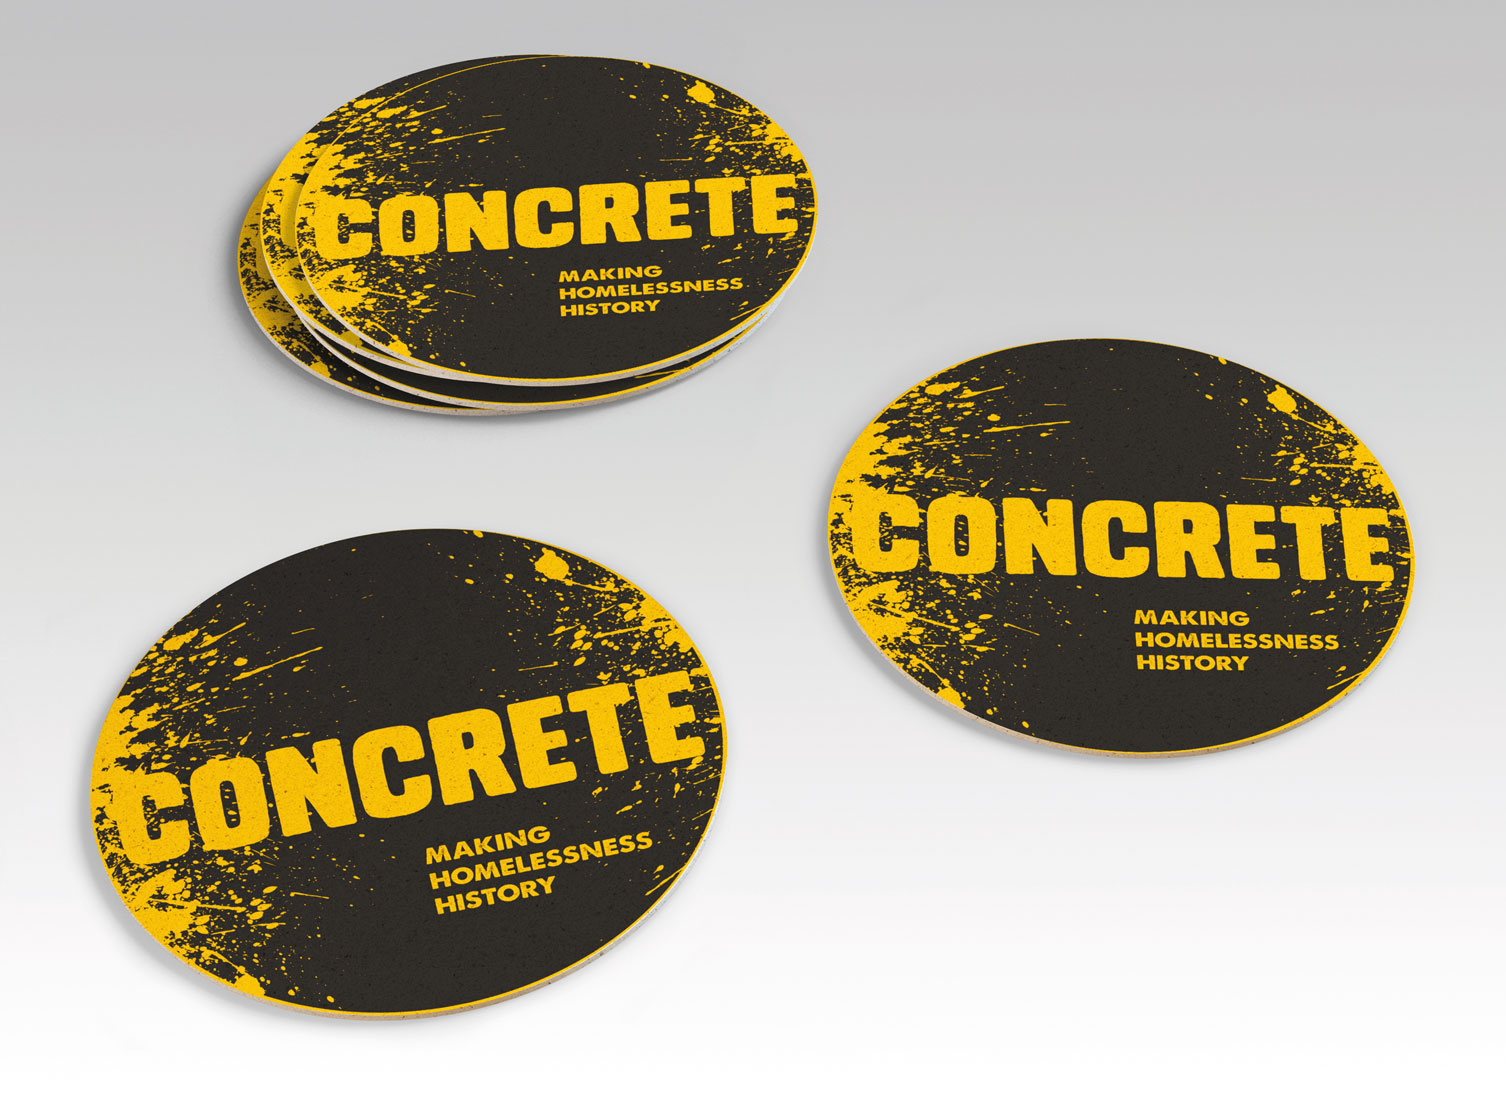 Concrete homelessness charity